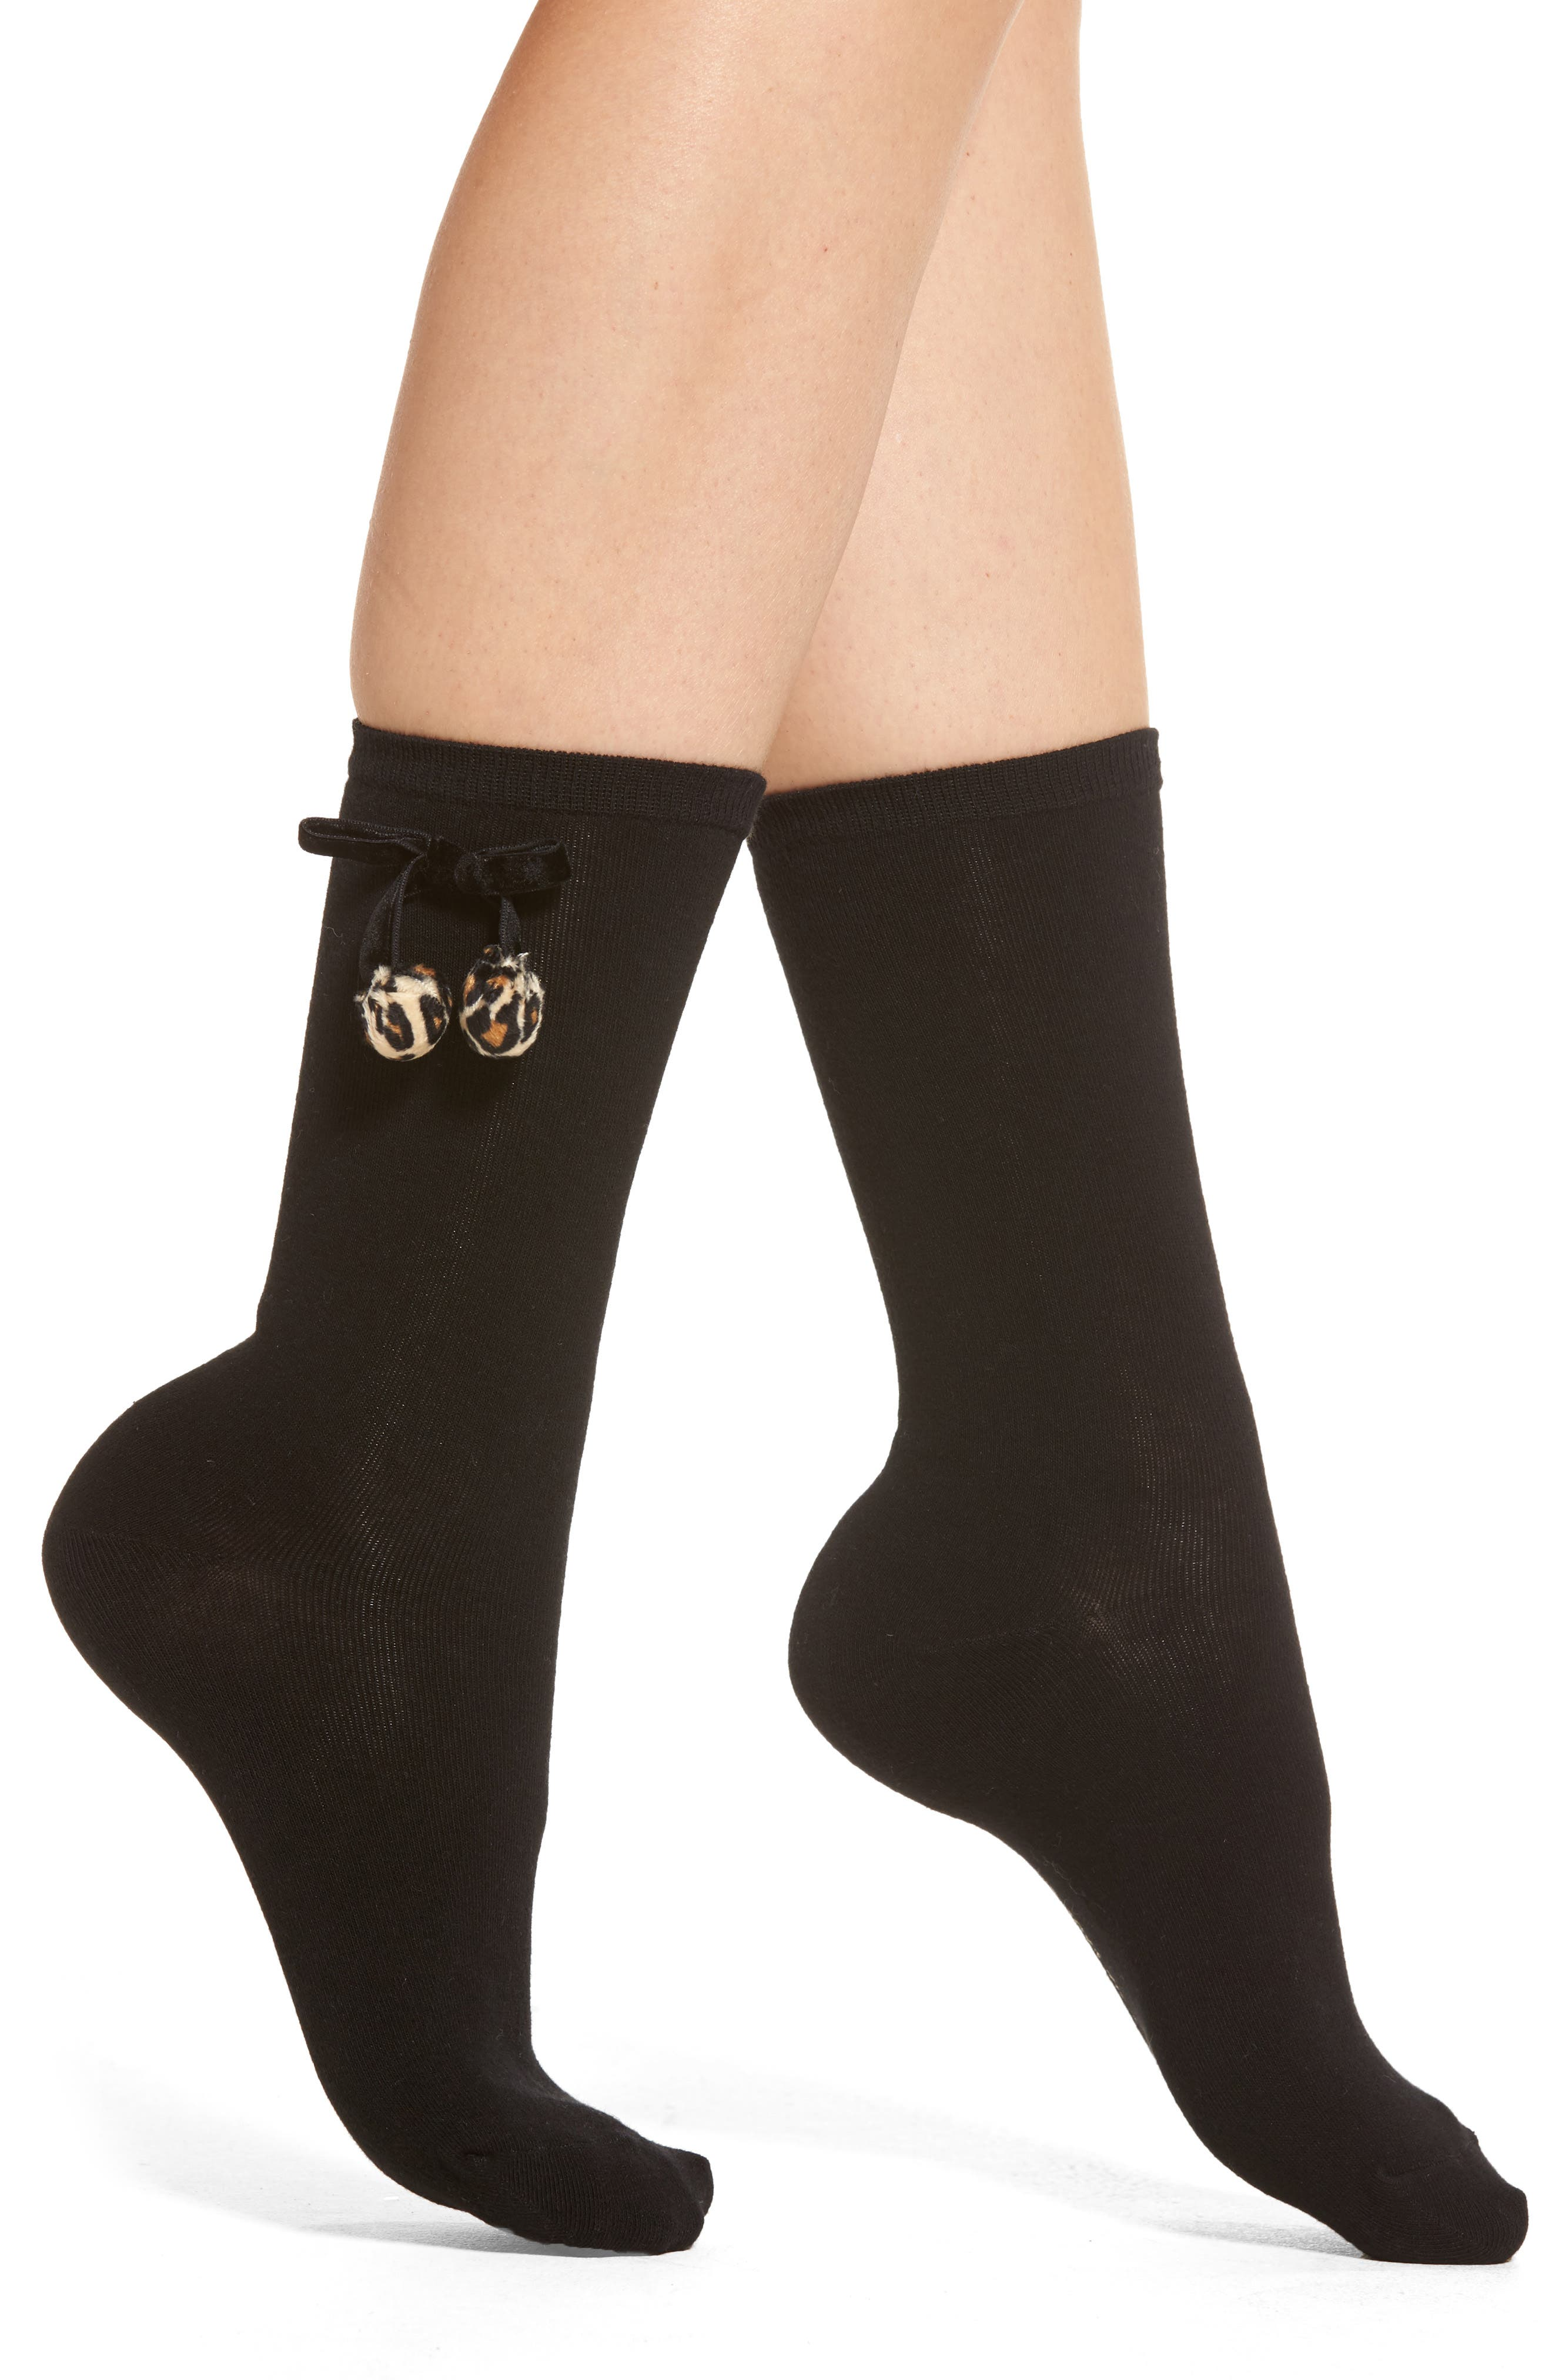 Main Image - kate spade new york crew socks (3 for $24.00)